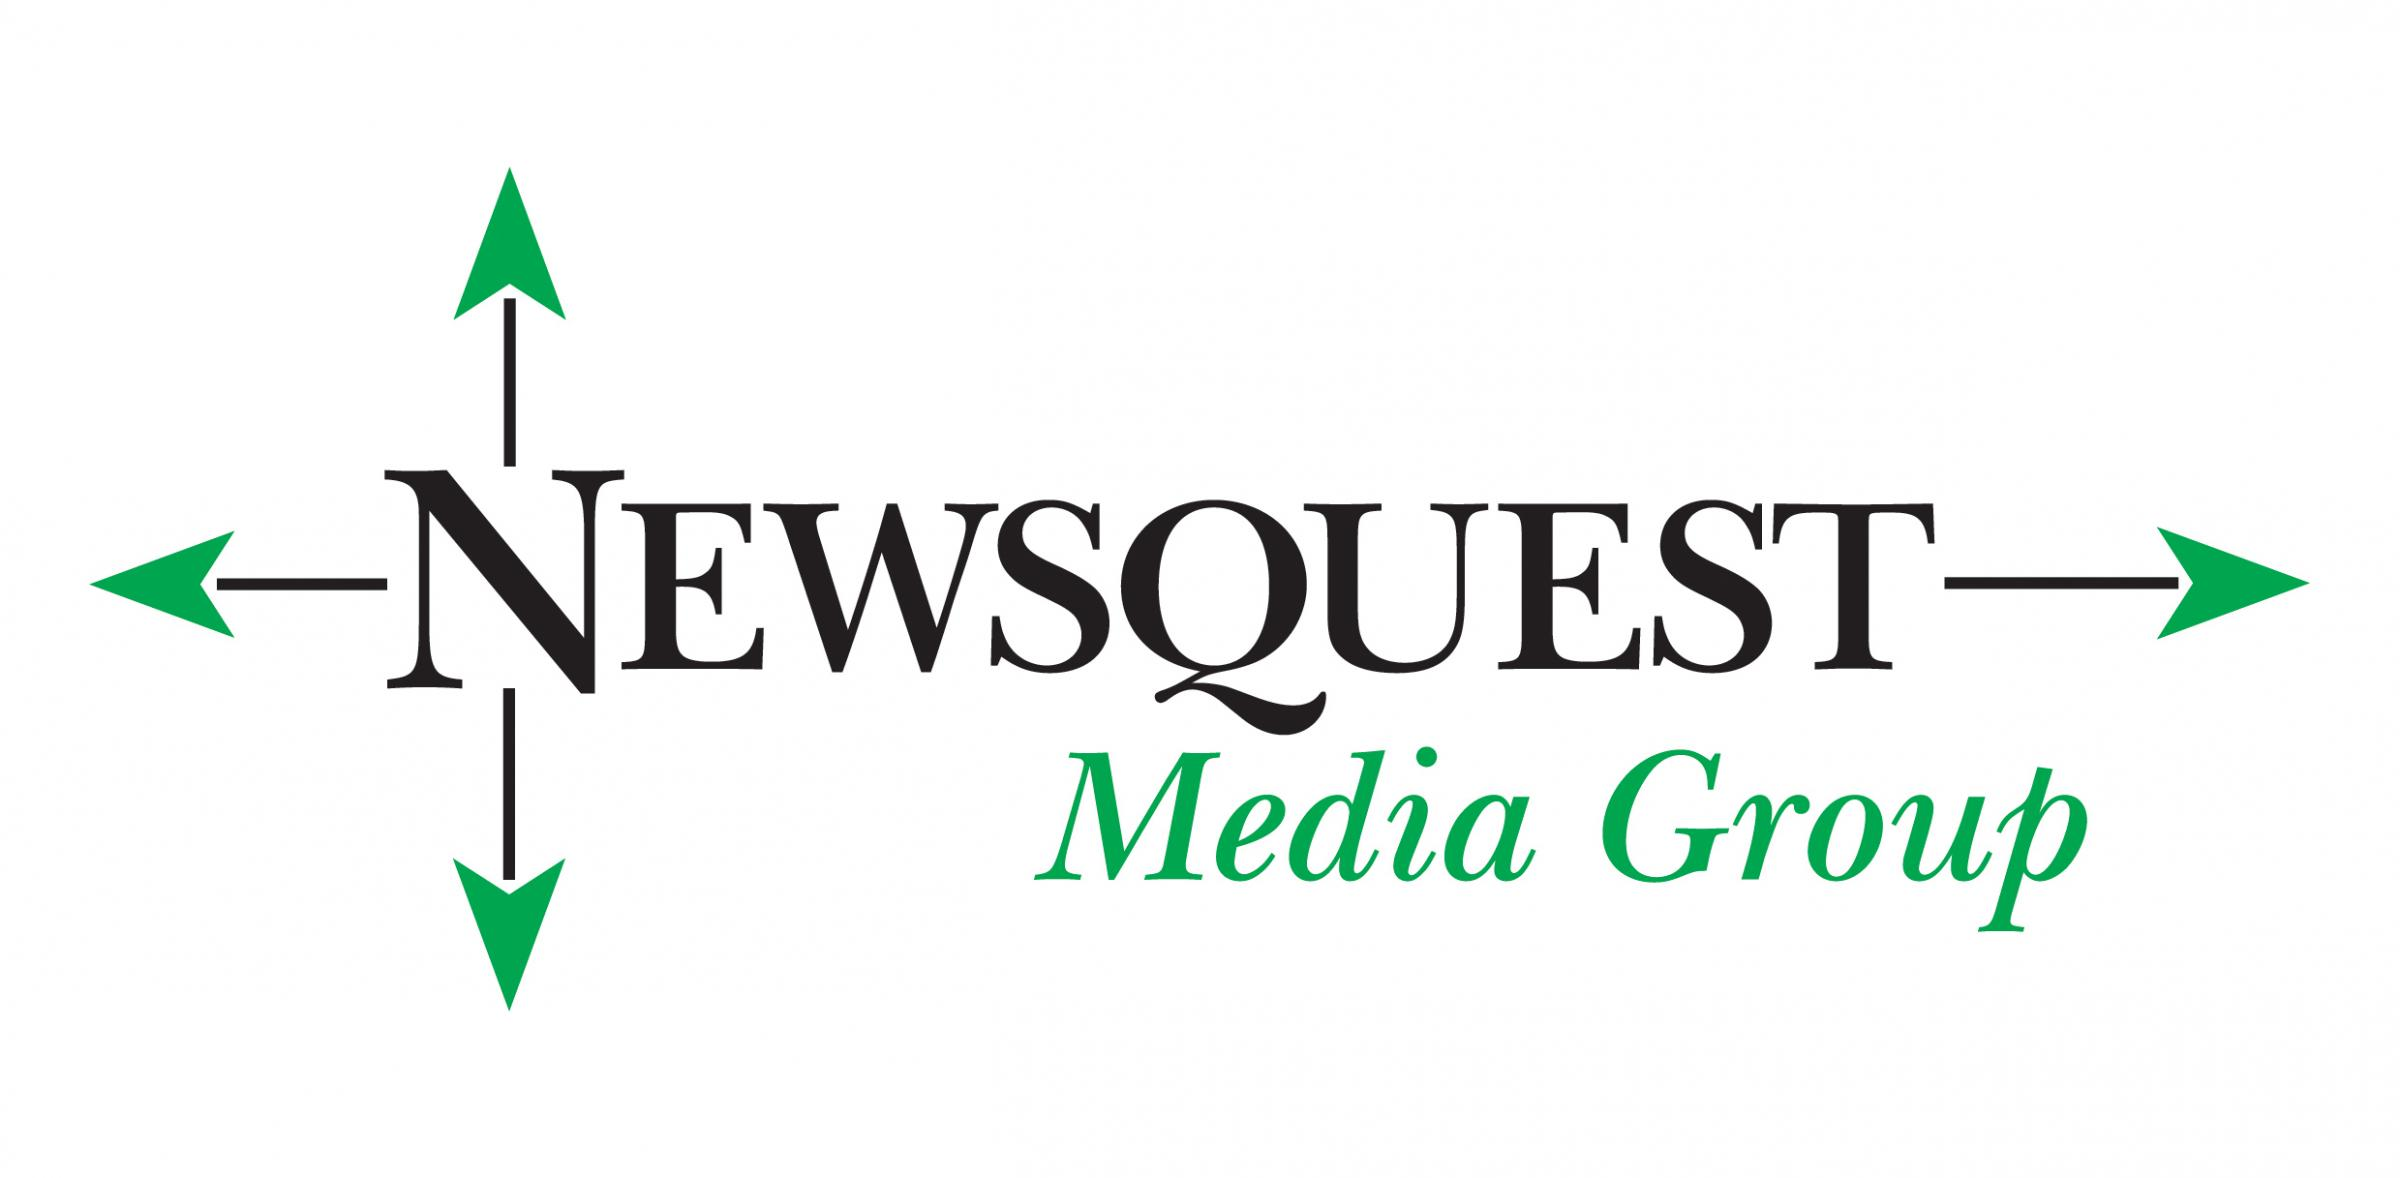 Newsquest - publisher of this website - has won an innovation award for digital advertising